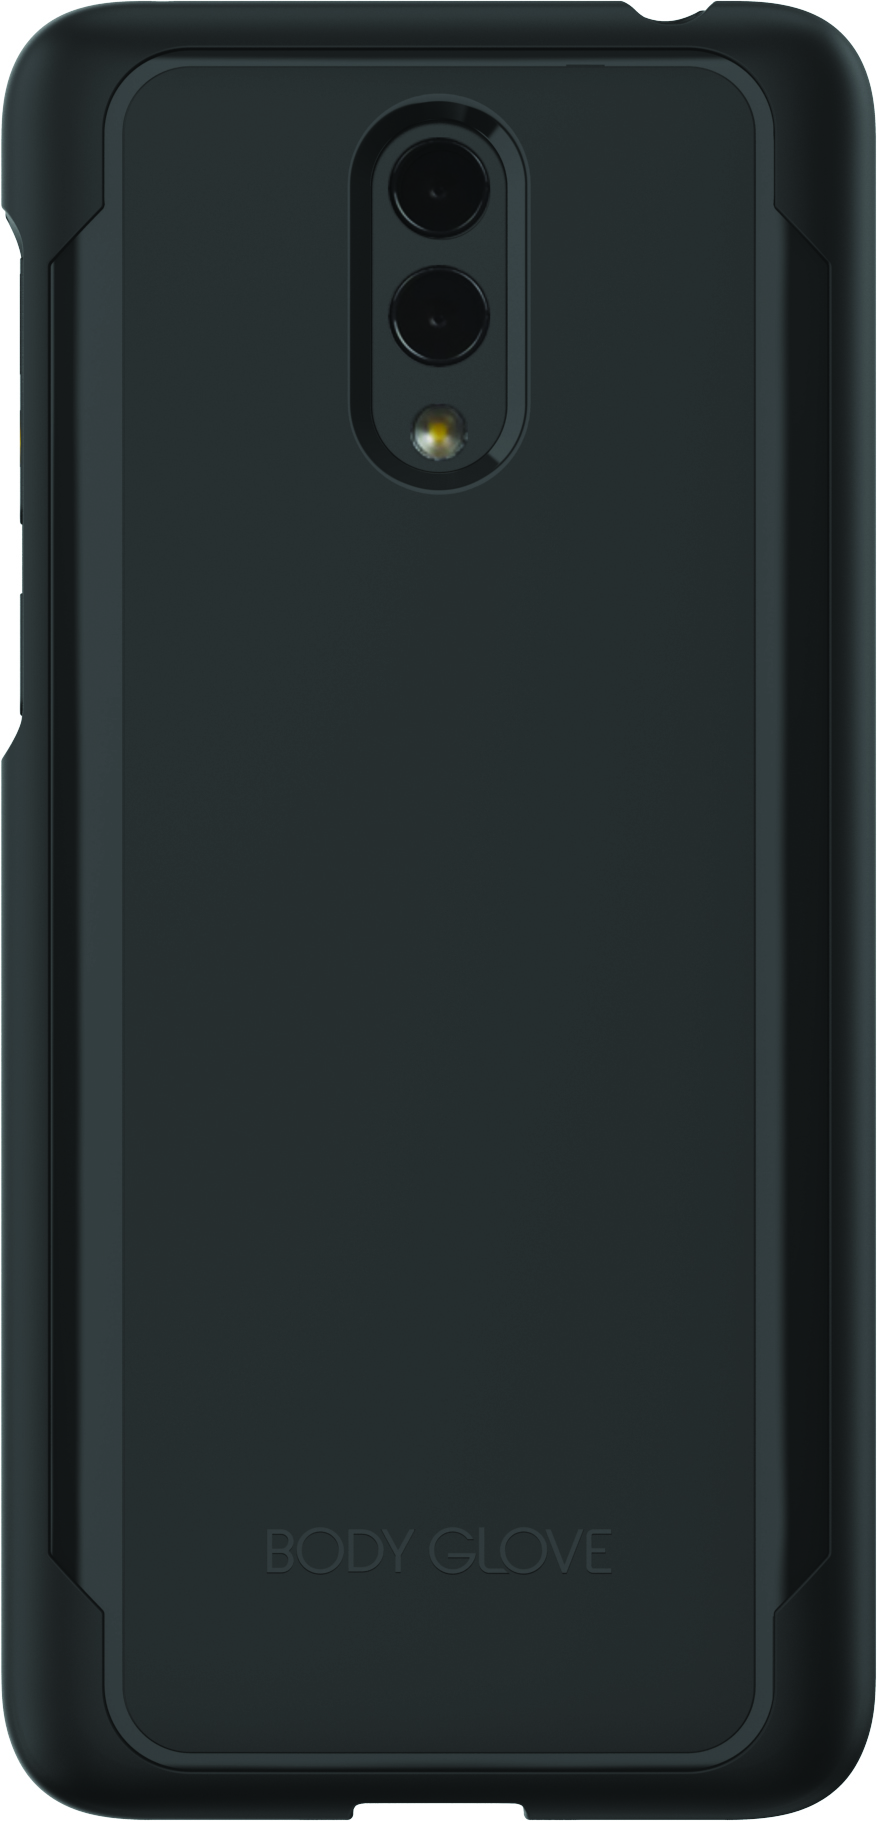 Body Glove Black Gel Phone Case for TCL A1X (Model A503DL)